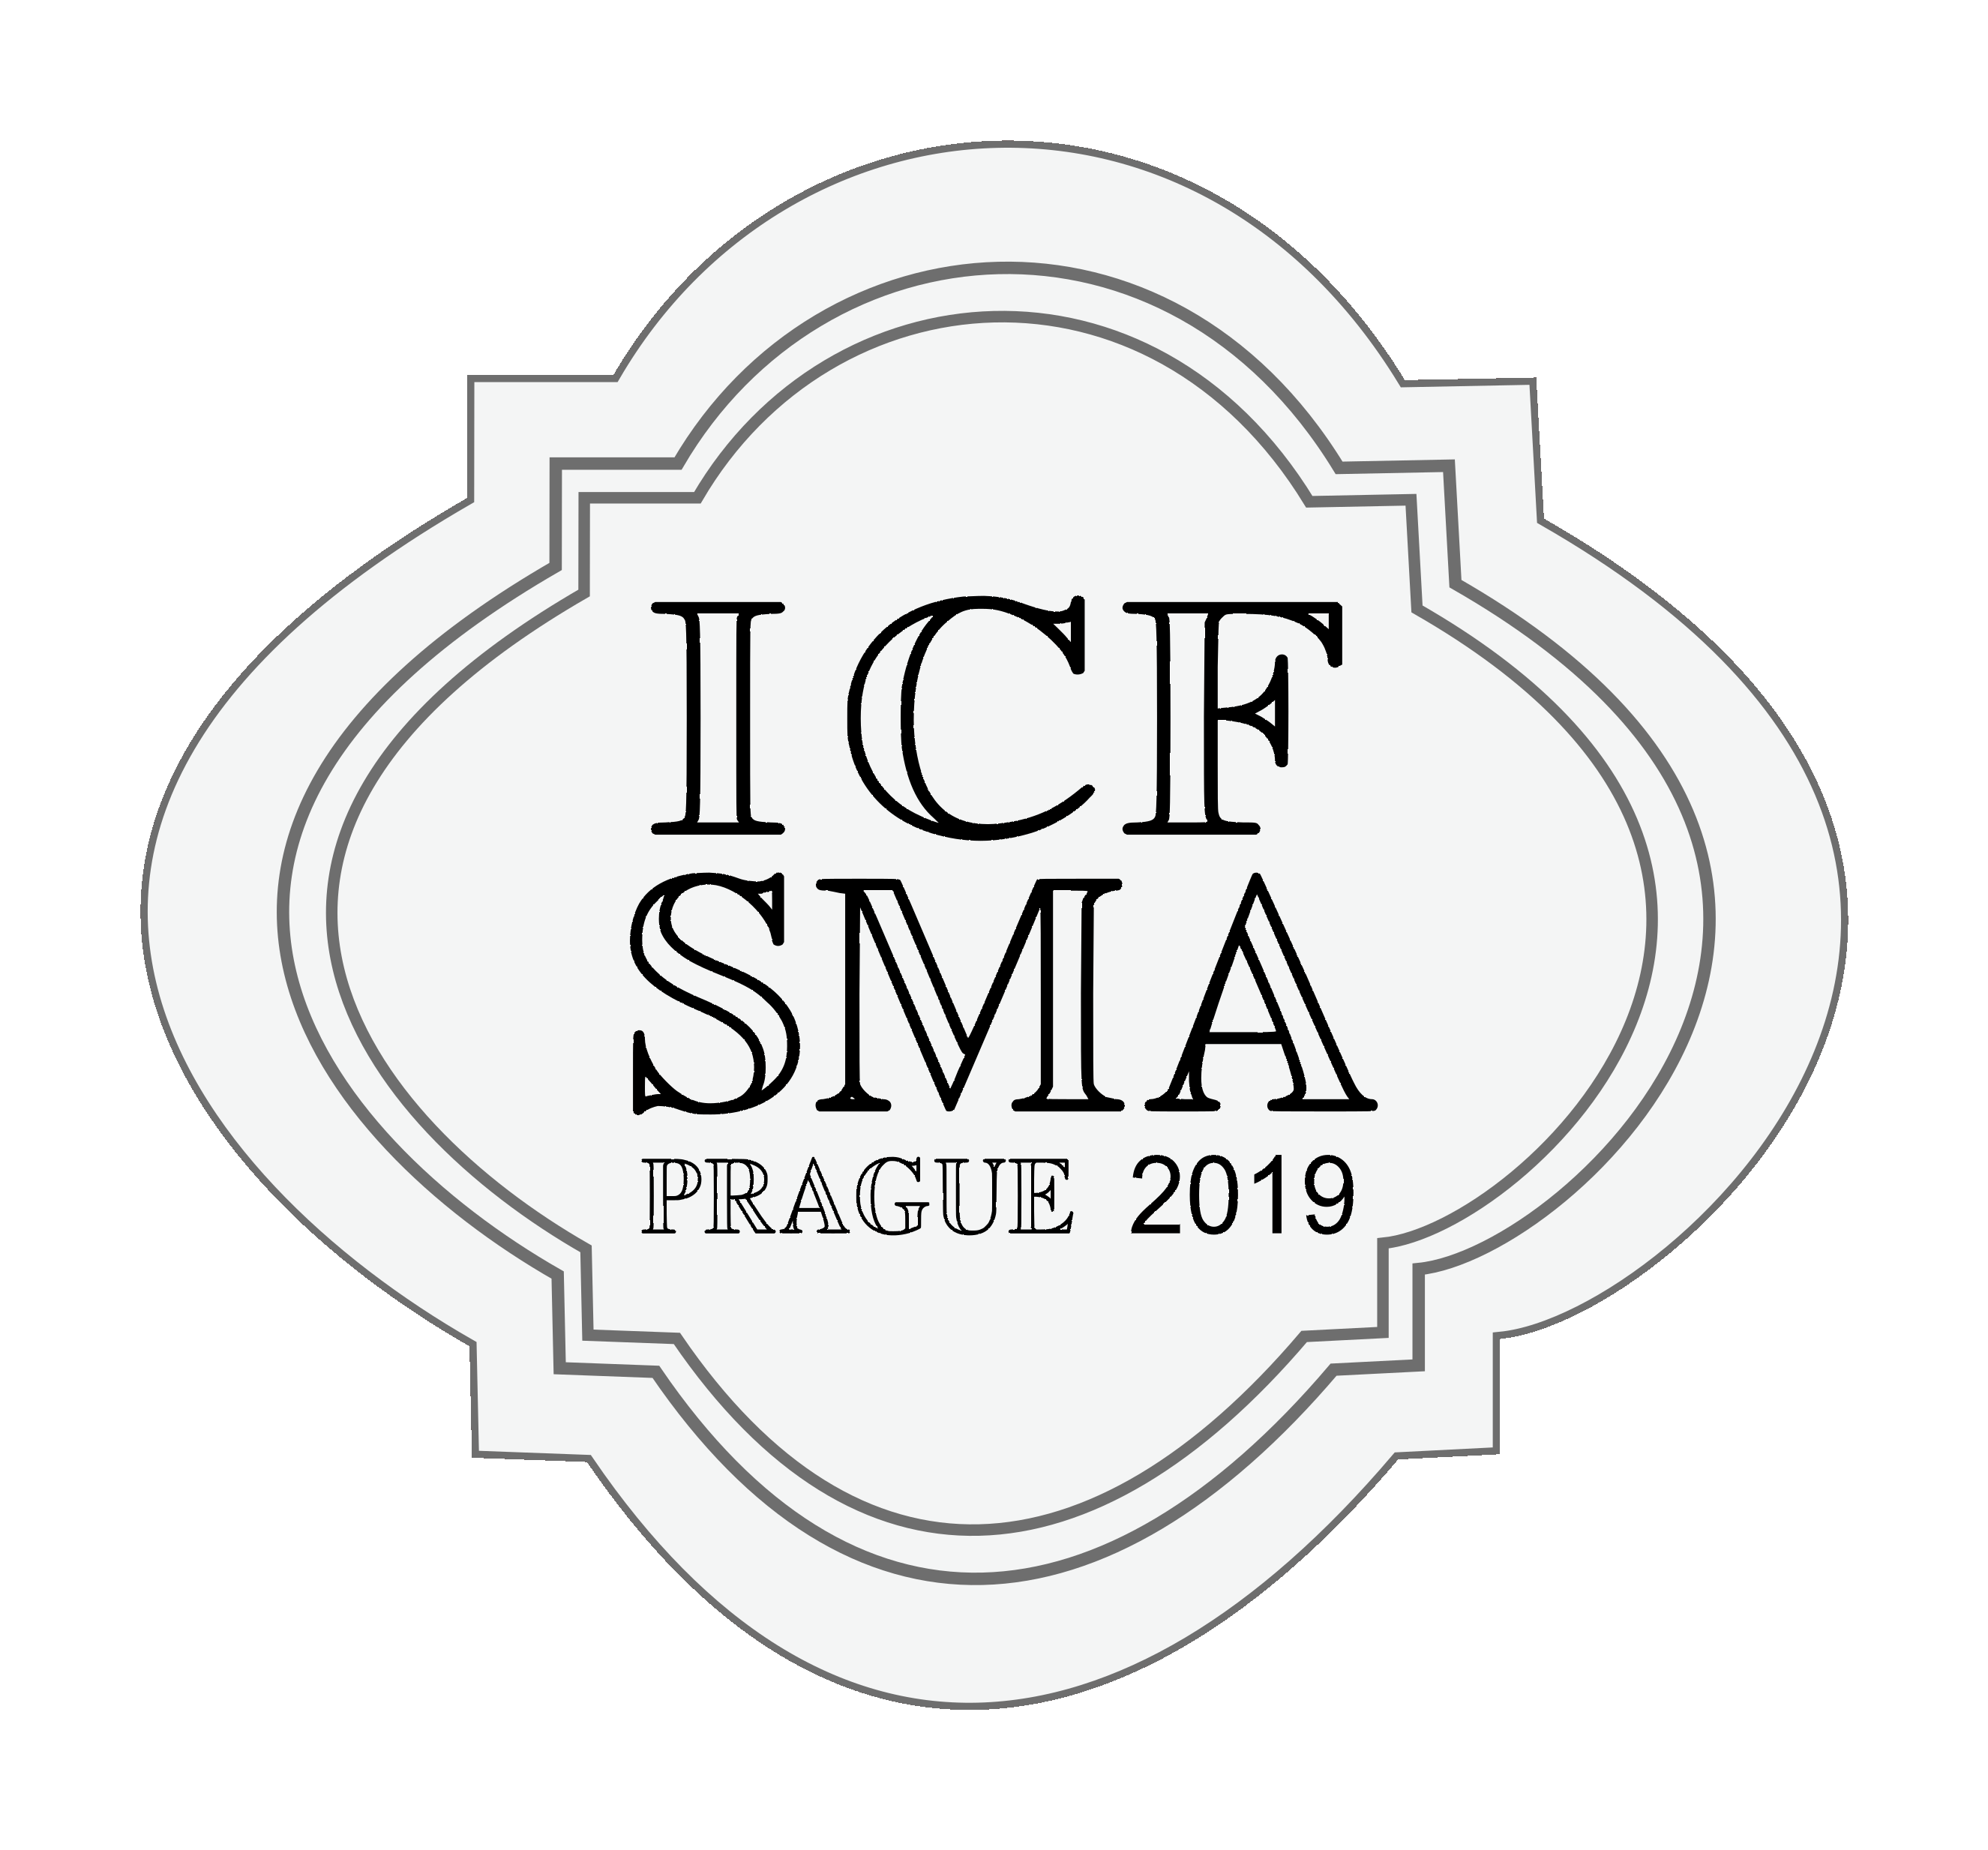 ICFSMA Conference 2019